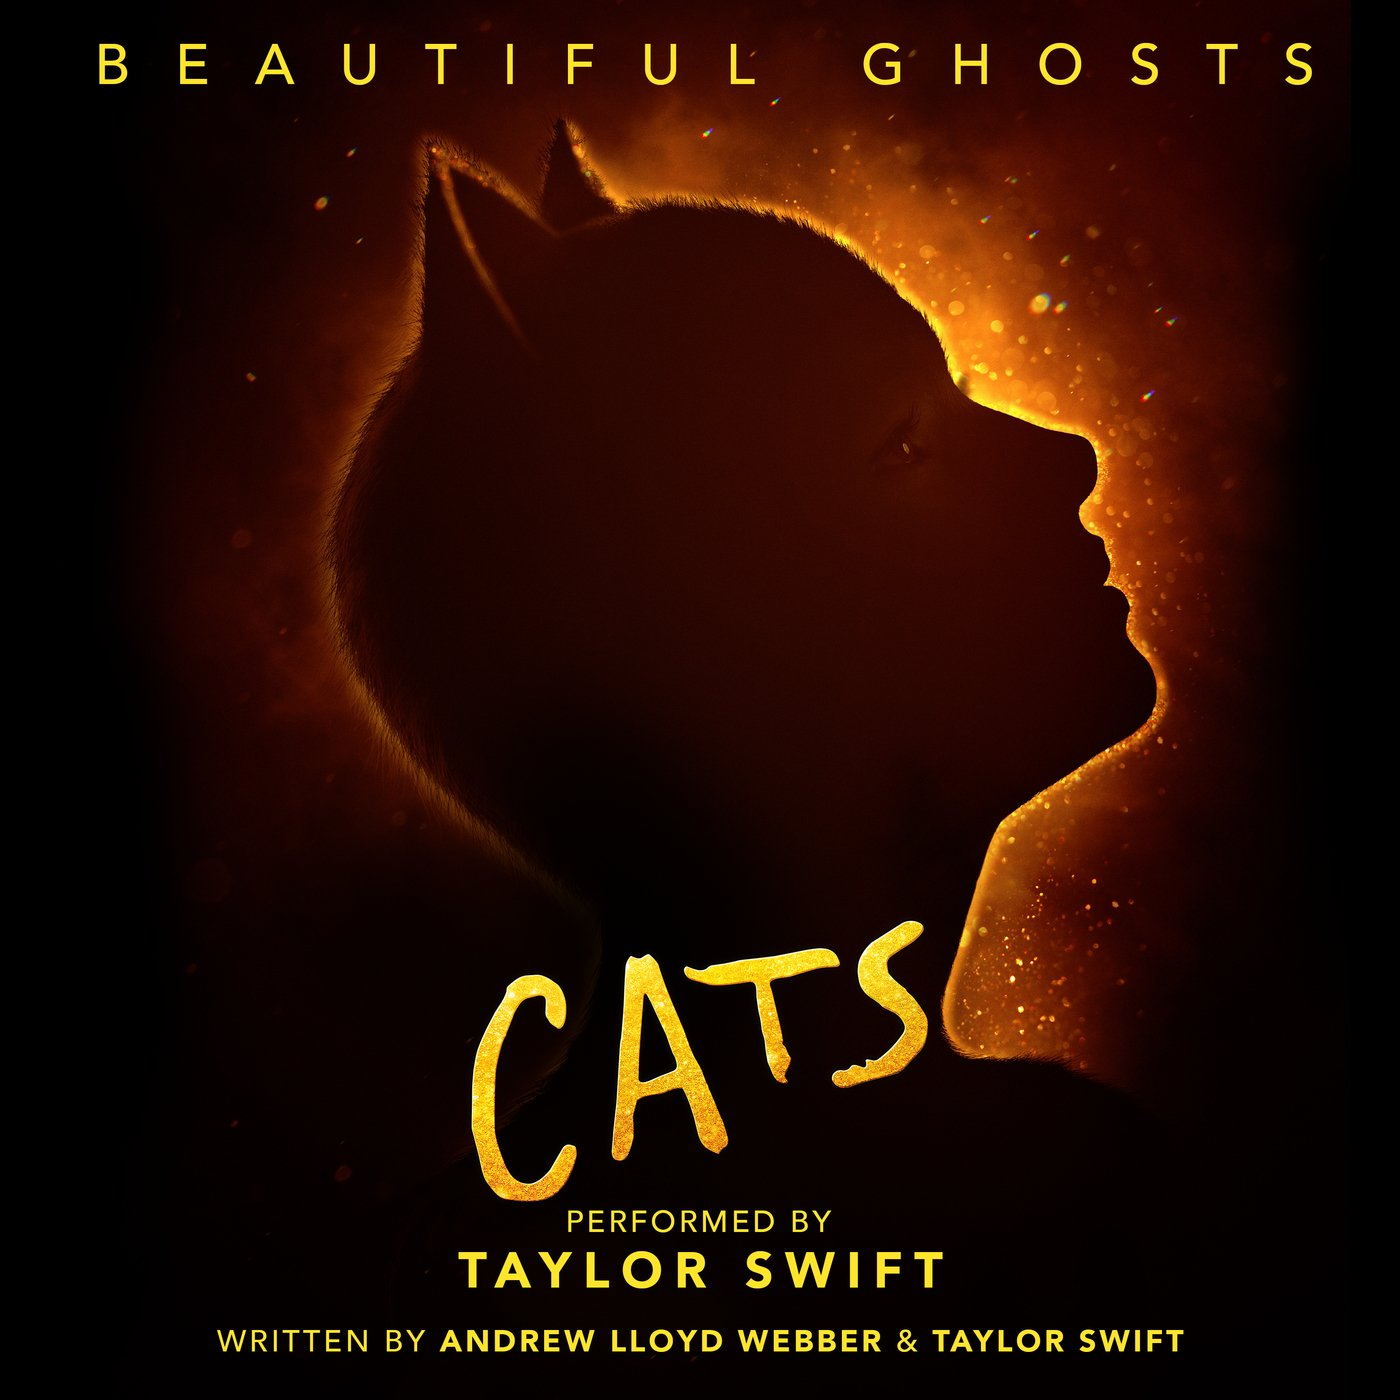 Beautiful Ghosts Cats Musical Wiki Fandom